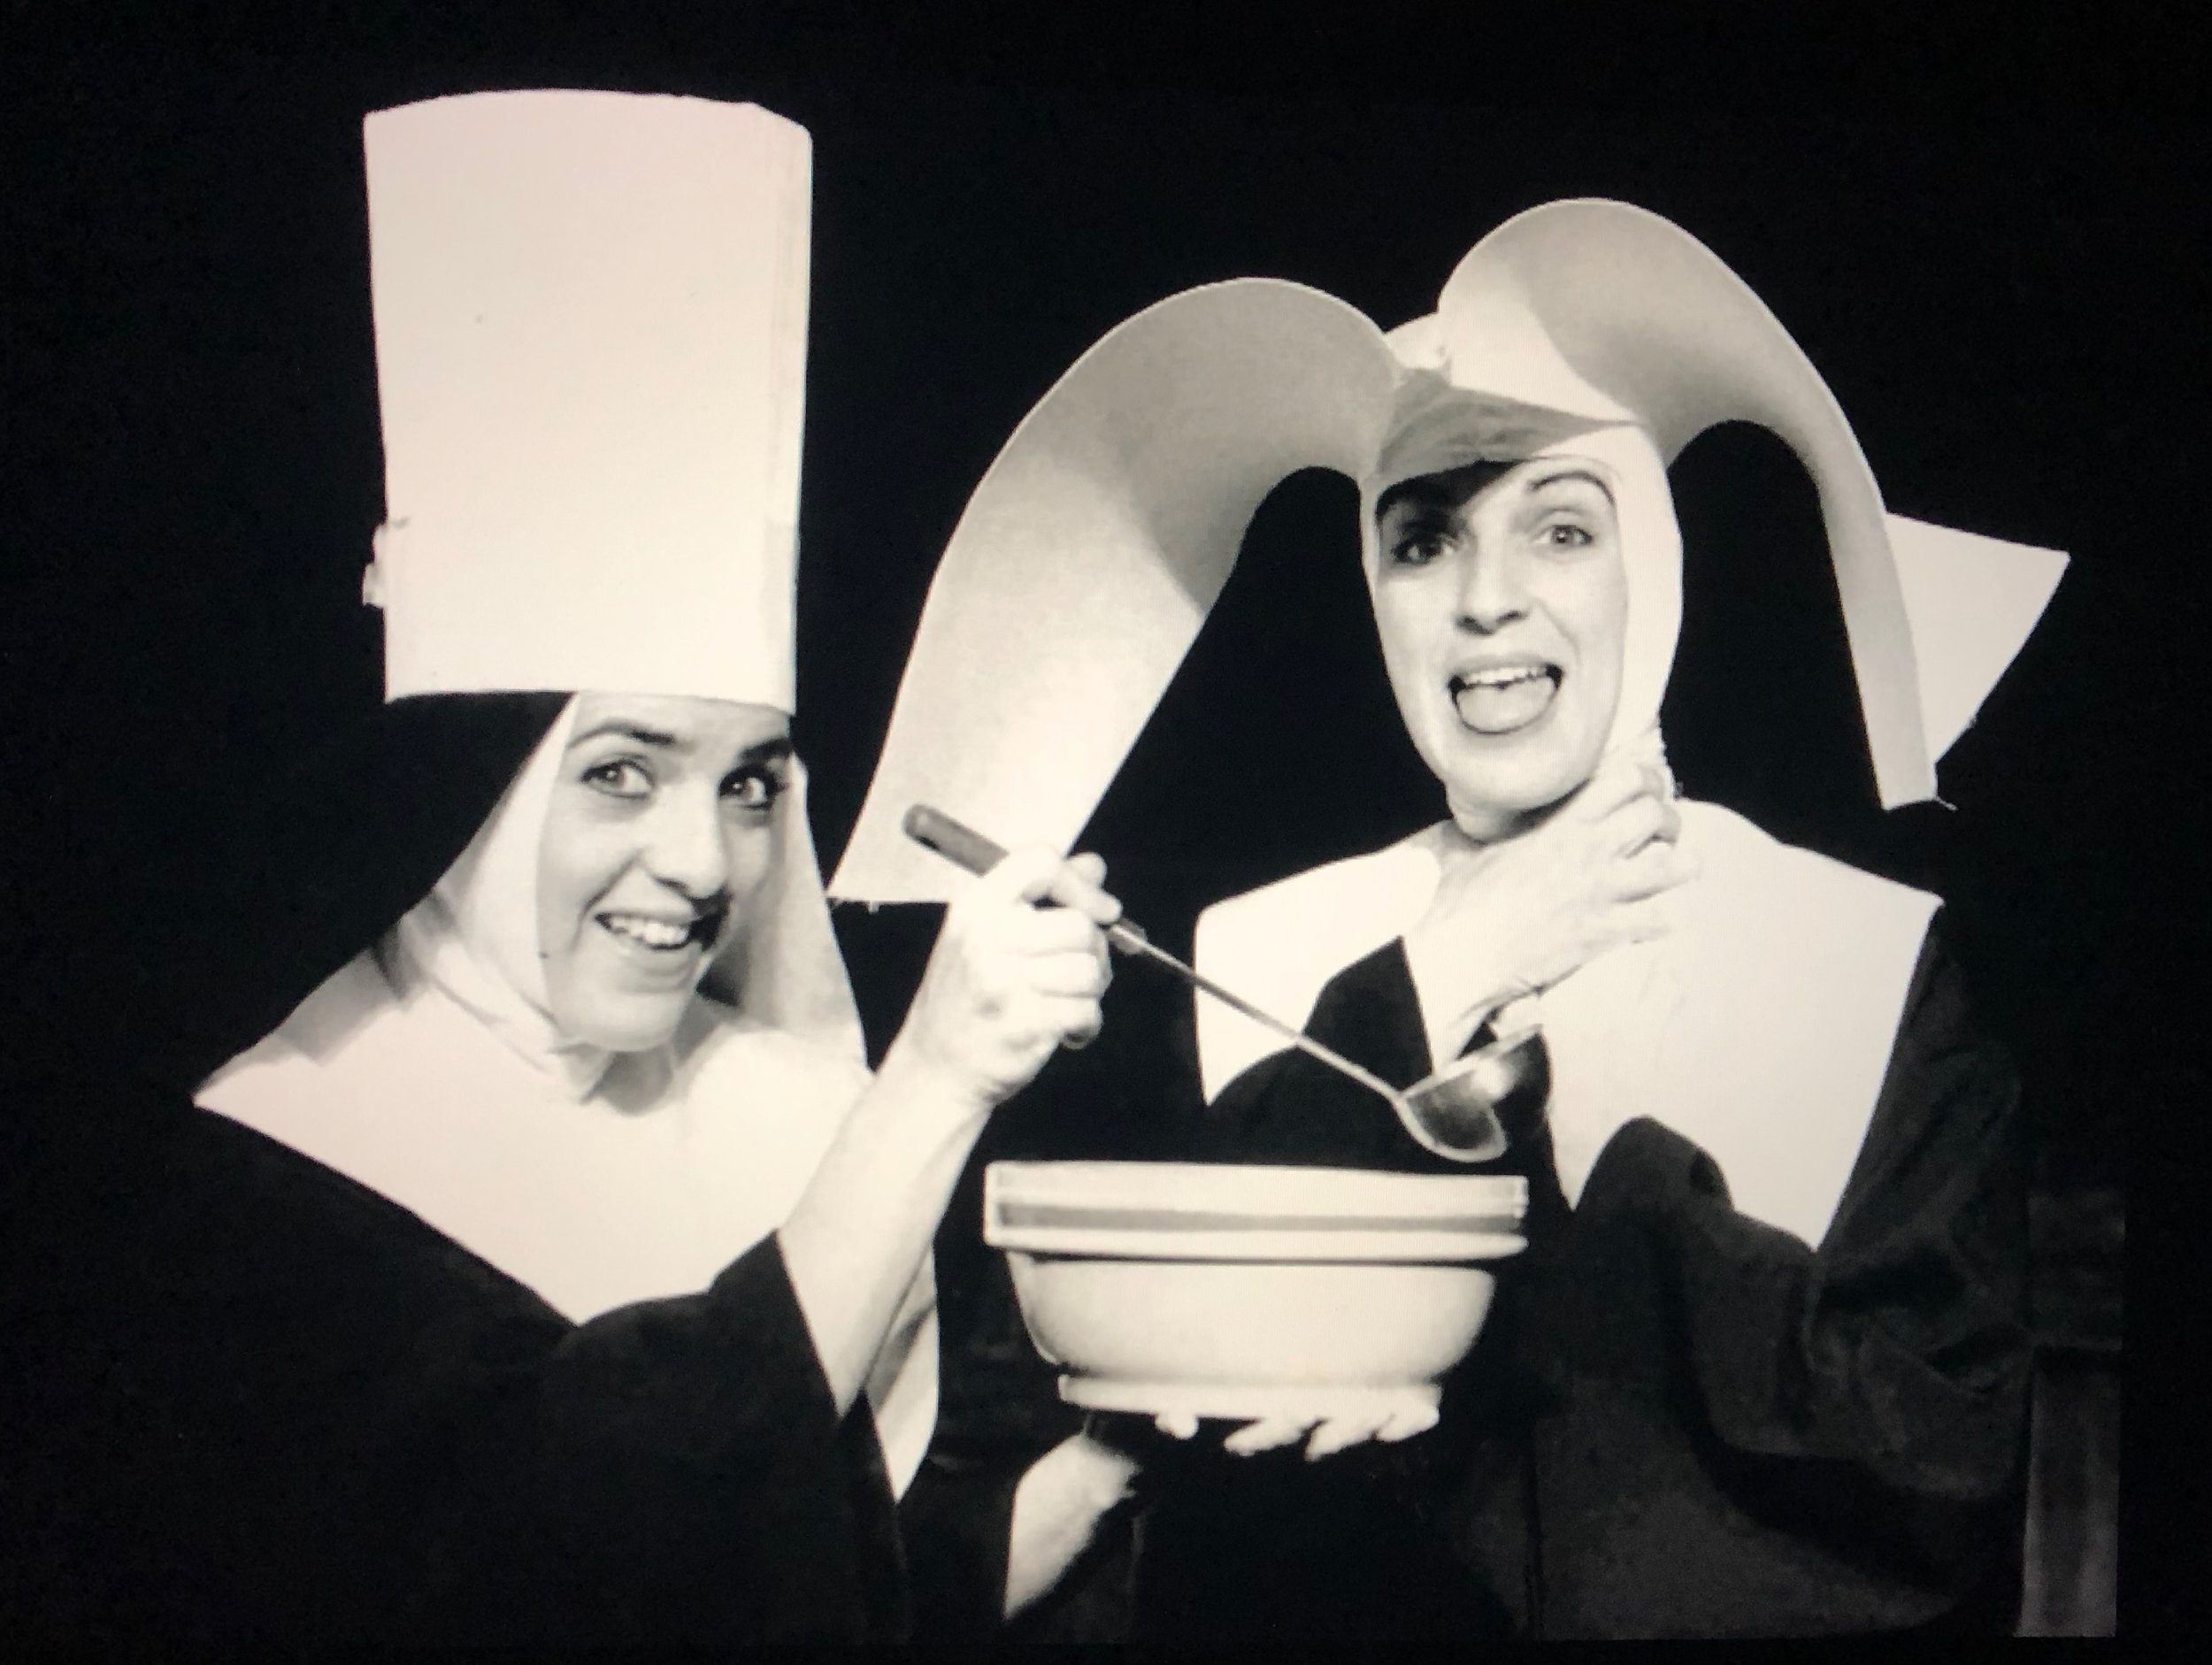 dancer and singer, penny leto, and red barn theatre co-founder, mimi mcdonald stand dressed as nuns from an early red barn production